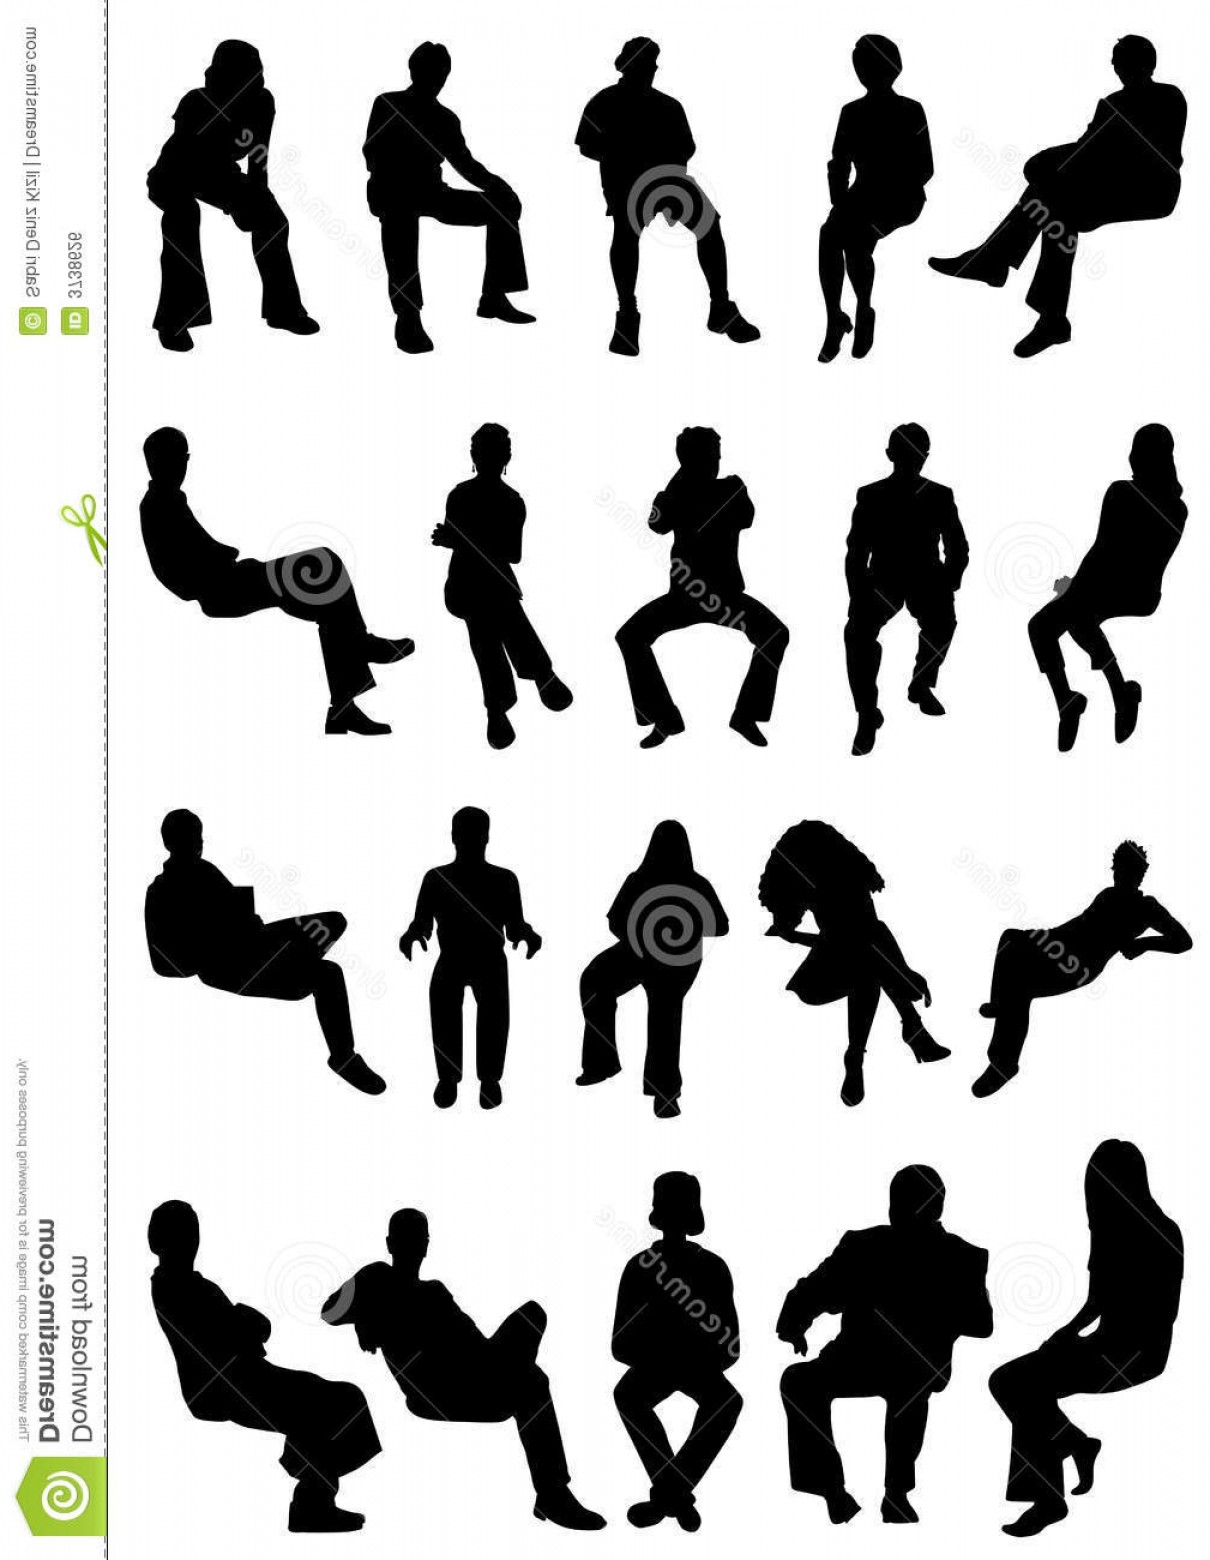 Vector People Free Clip Art: Royalty Free Stock Image Collection Sitting People Vector Image